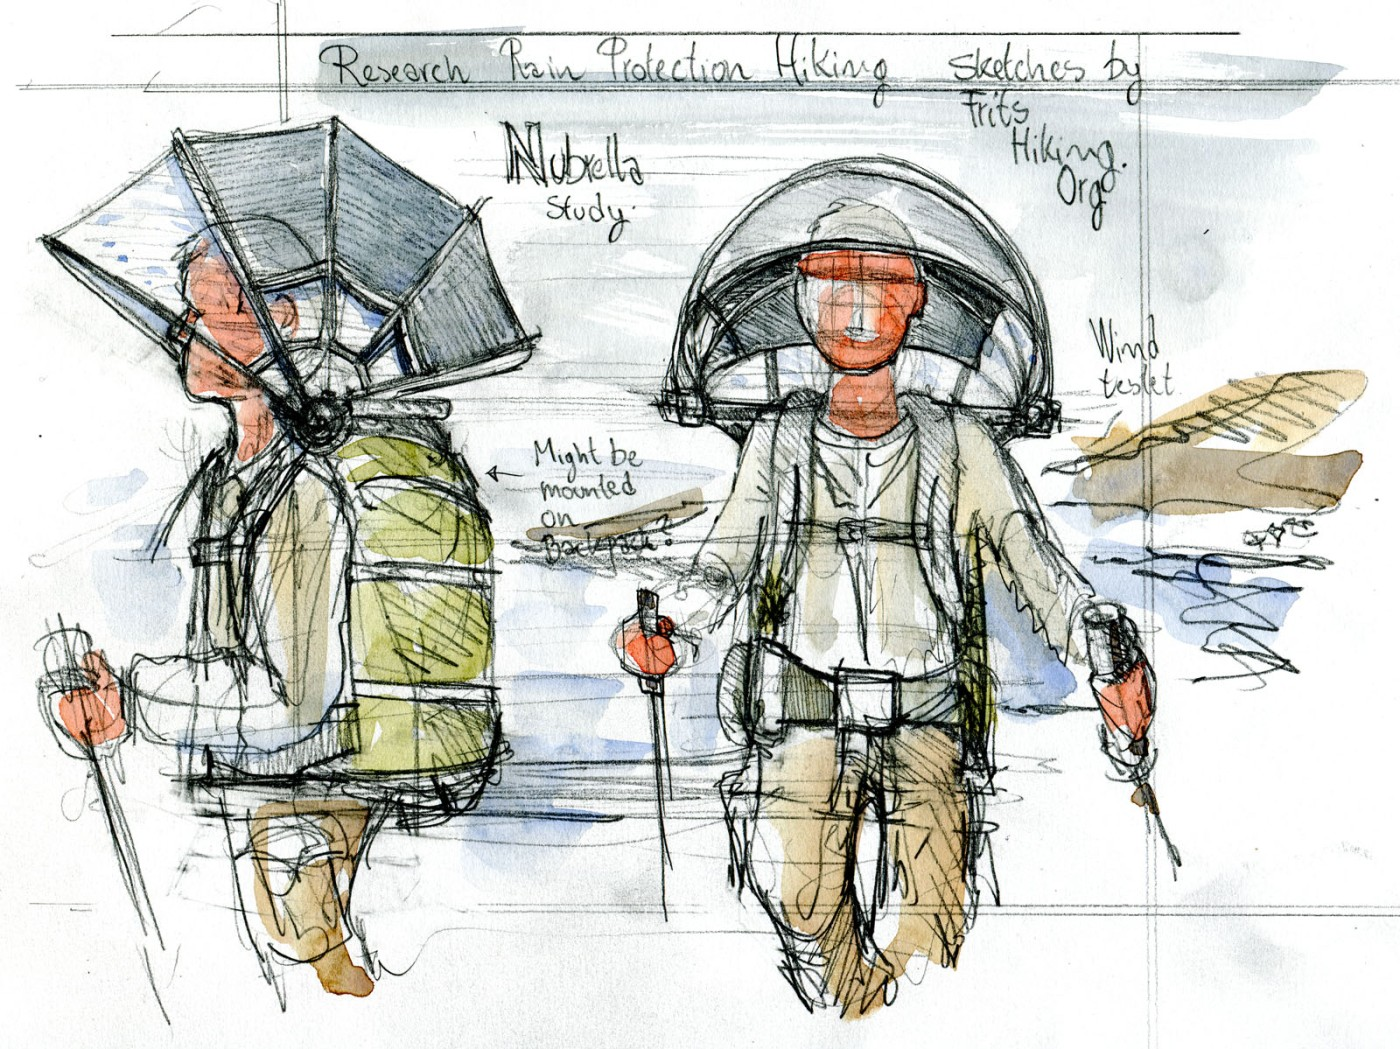 Research drawing of the Nubrella umbrella concept. Drawing by Frits Ahlefeldt